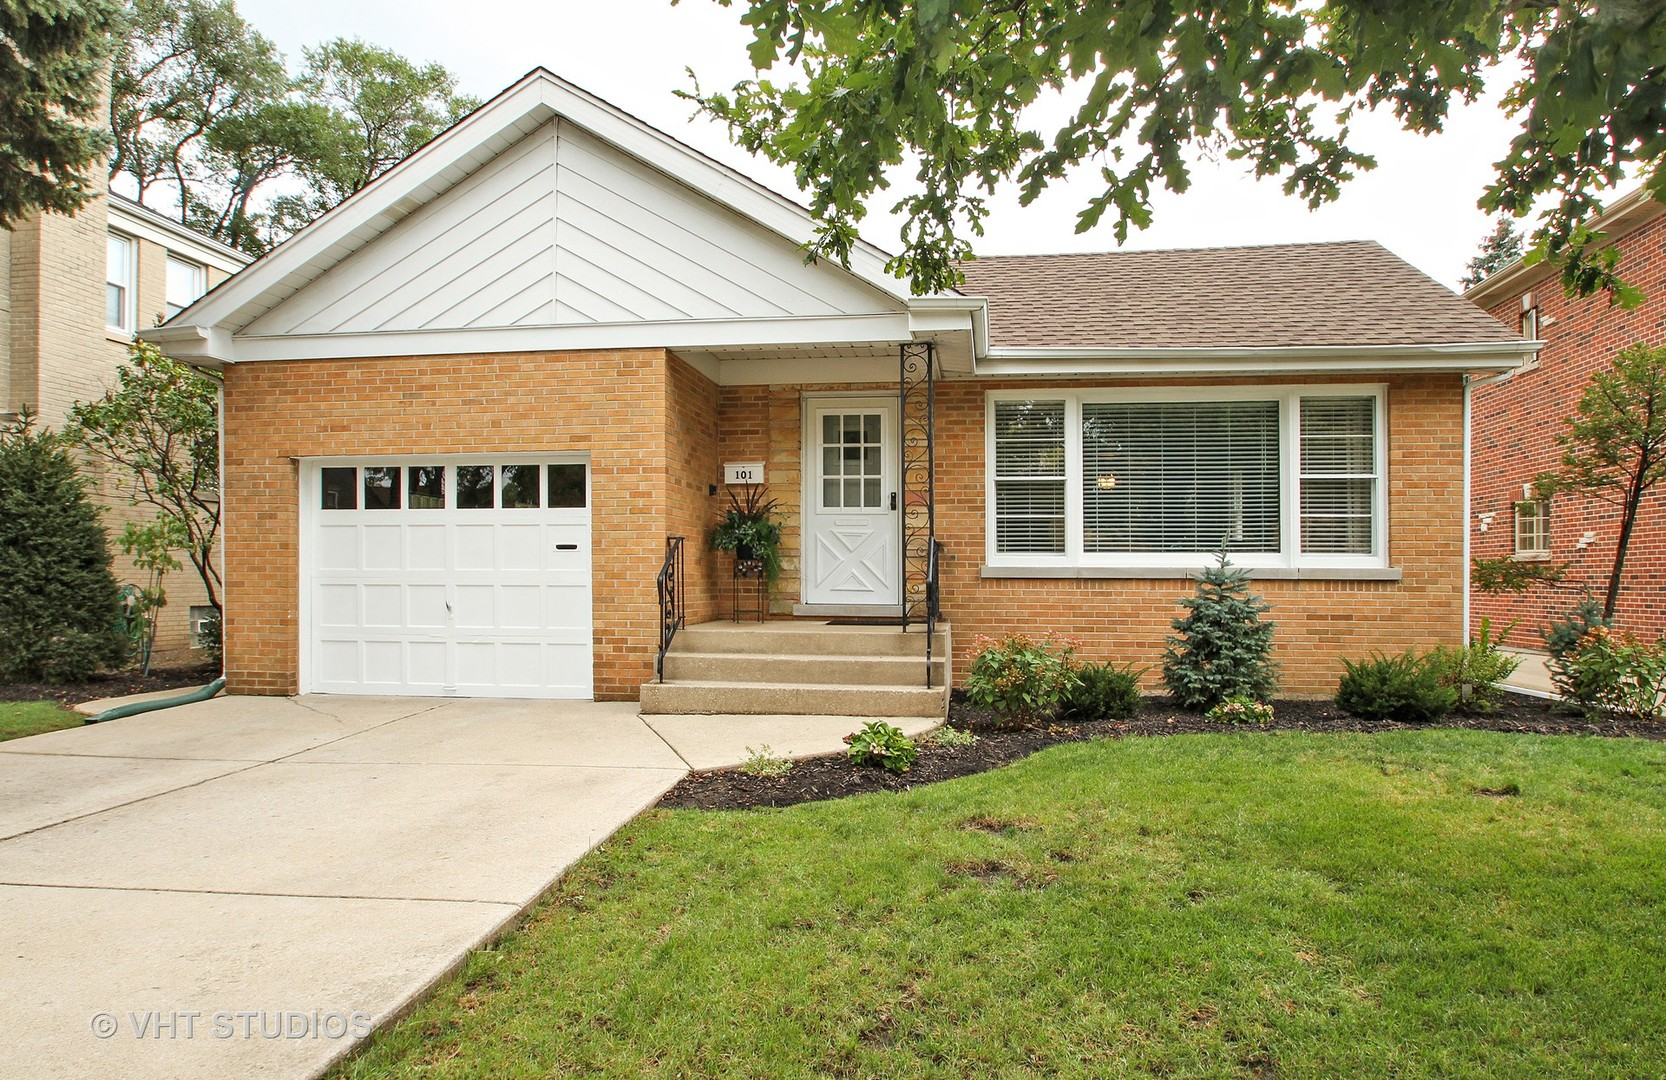 101 West TOUHY Avenue, Park Ridge in Cook County, IL 60068 Home for Sale